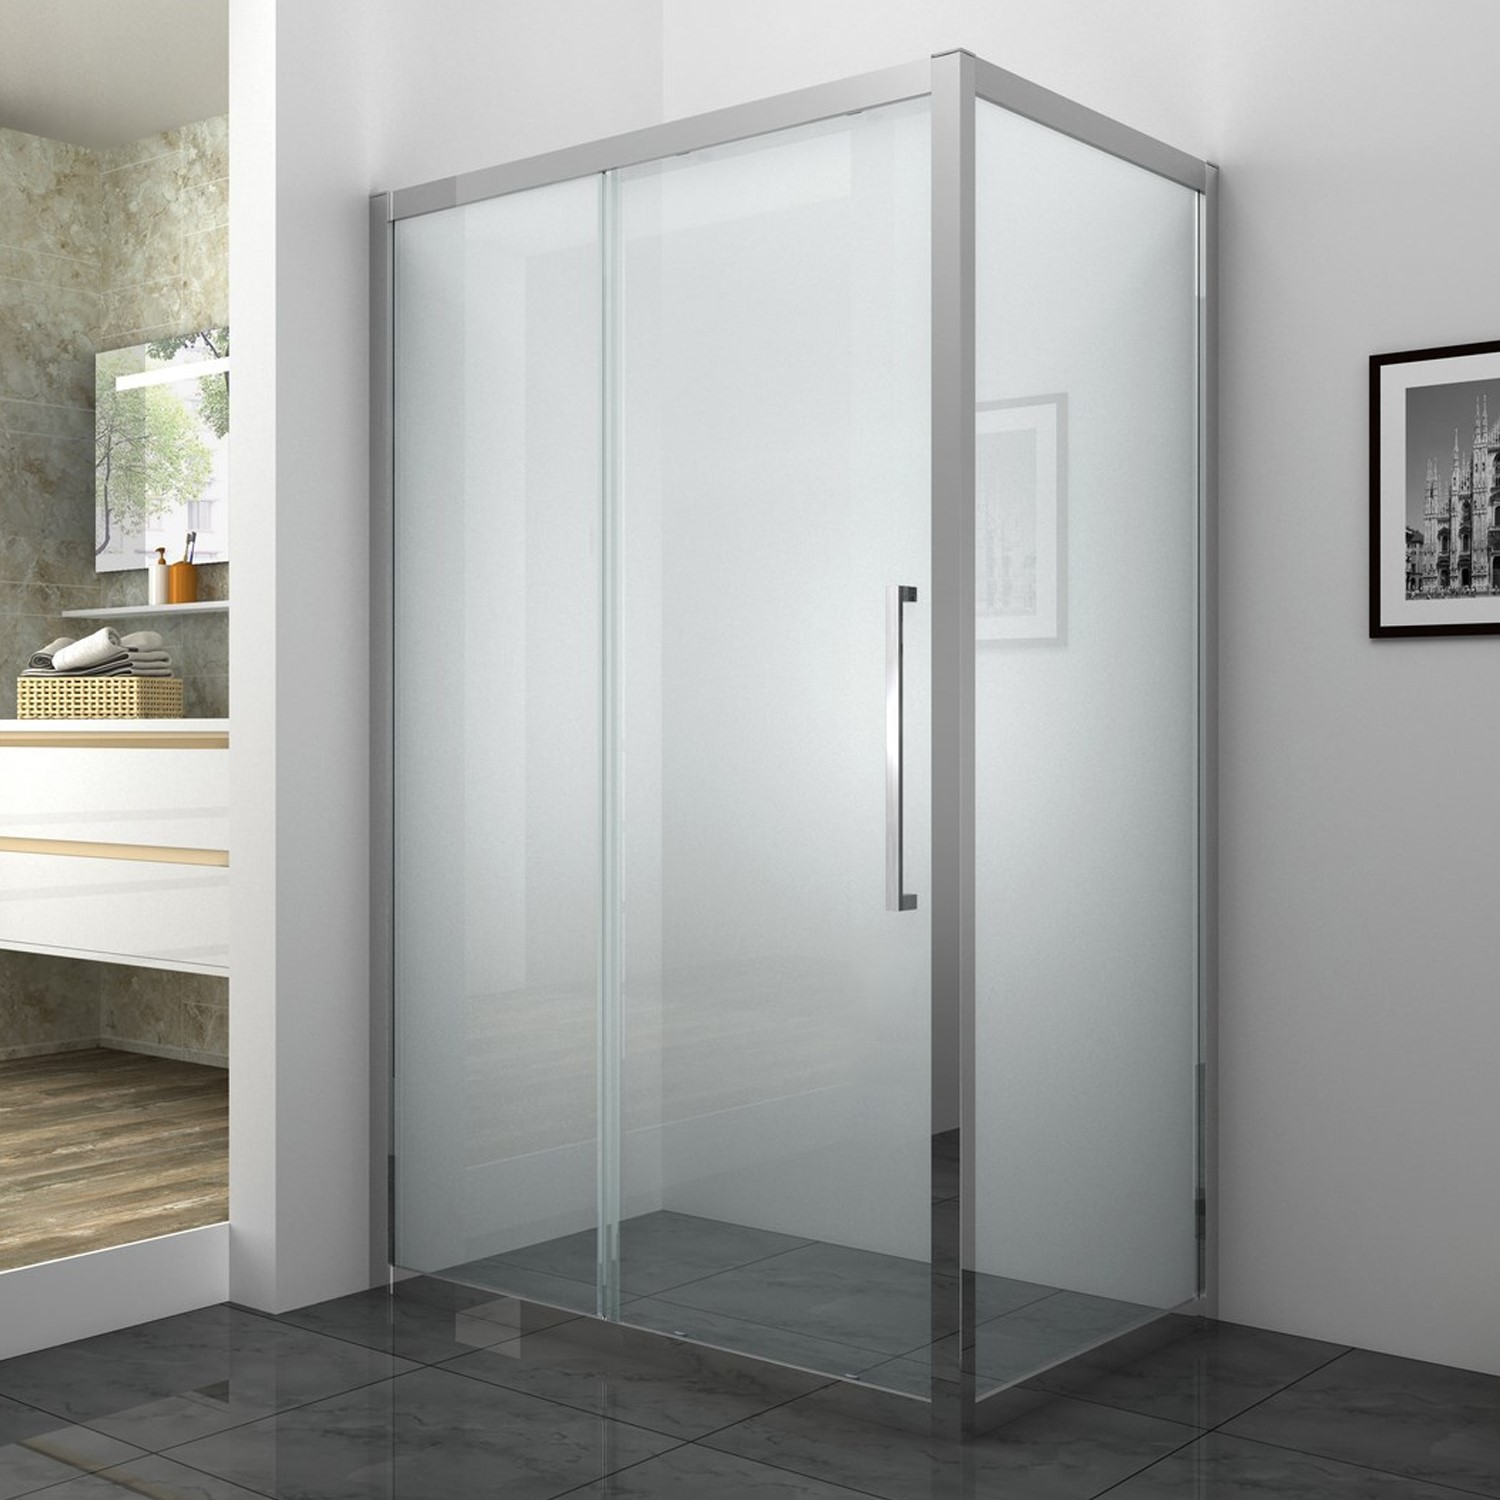 Taylor & Moore SESP808 Shower Side Panel  W800 x 1850mm